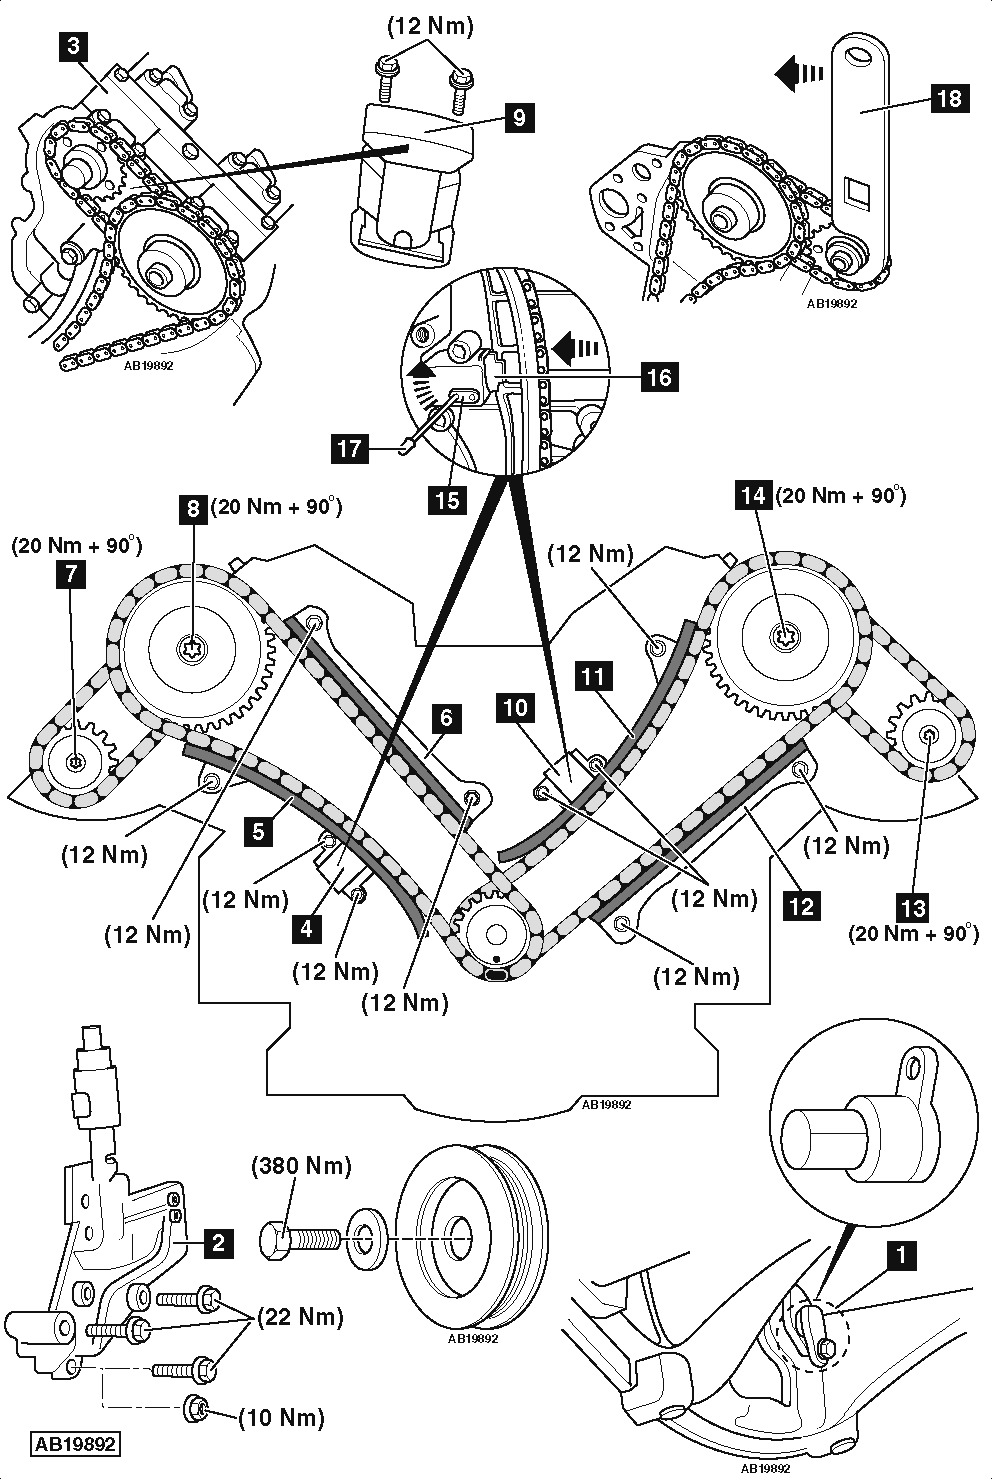 How To Replace Timing Chains On Jaguar Xf 4 2 Sv8 2008 2009 in addition 0A0210 further Ford Crank Position Sensor Location furthermore 2sg0j Nissan 350z Trying Locate Iat Intake Air Temp Sensor also 8yizg Dodge Caliber Oil Pressure Light. on crankshaft position sensor location